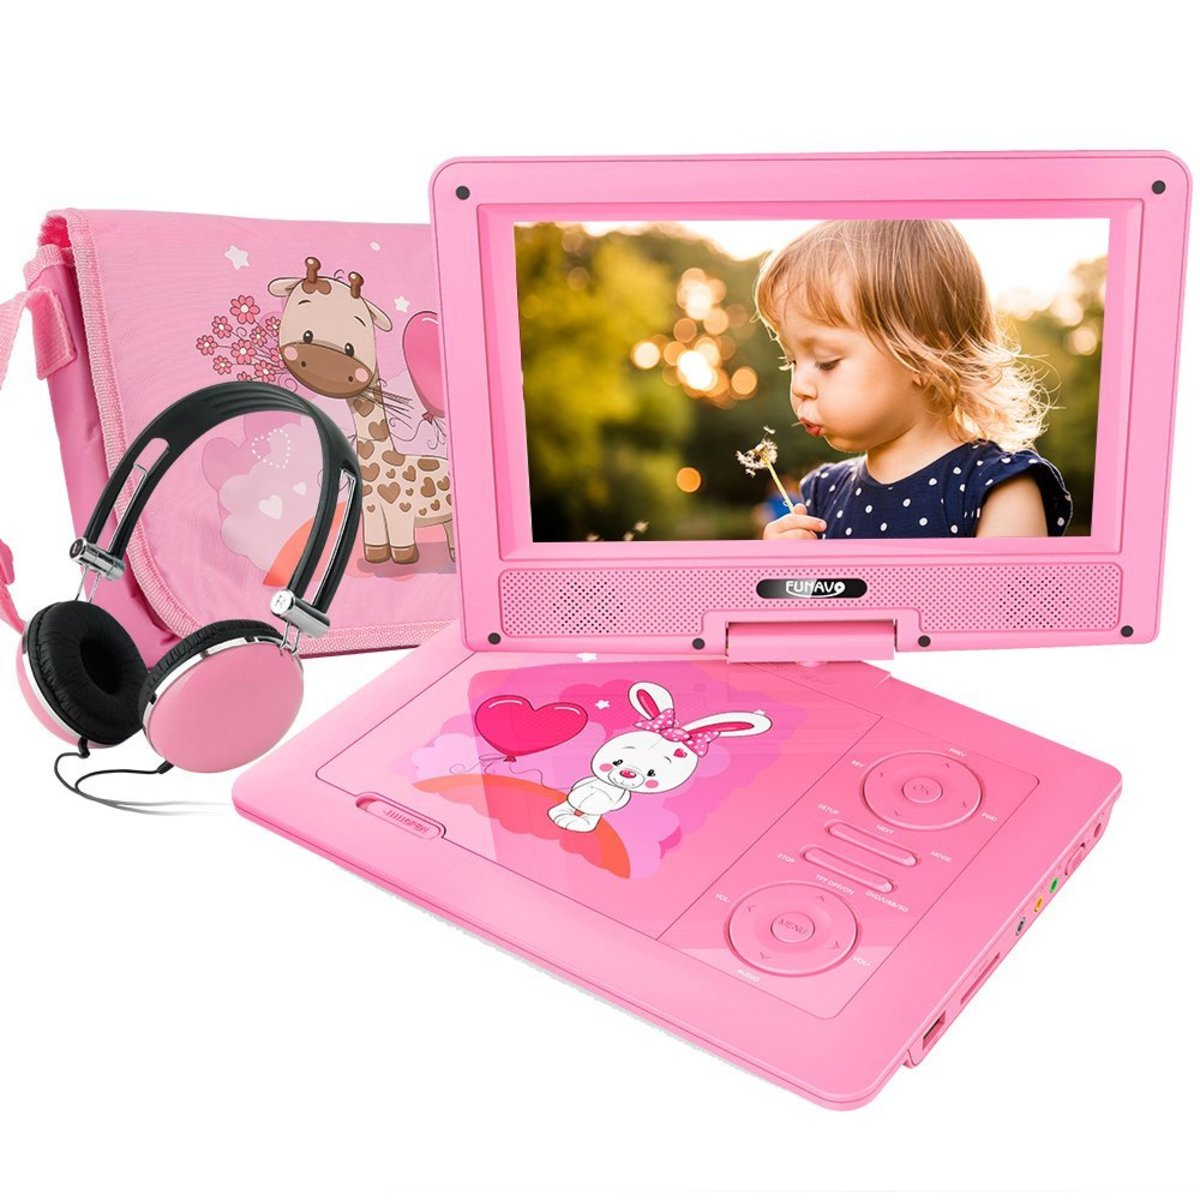 """The FUNAVO 10.5"""". The FUNAVO was a great buy. The picture quality and audio are good, and it comes with matching headphones and carry case. The swivel screen is relatively large for a portable, and easy for my young daughter to use."""